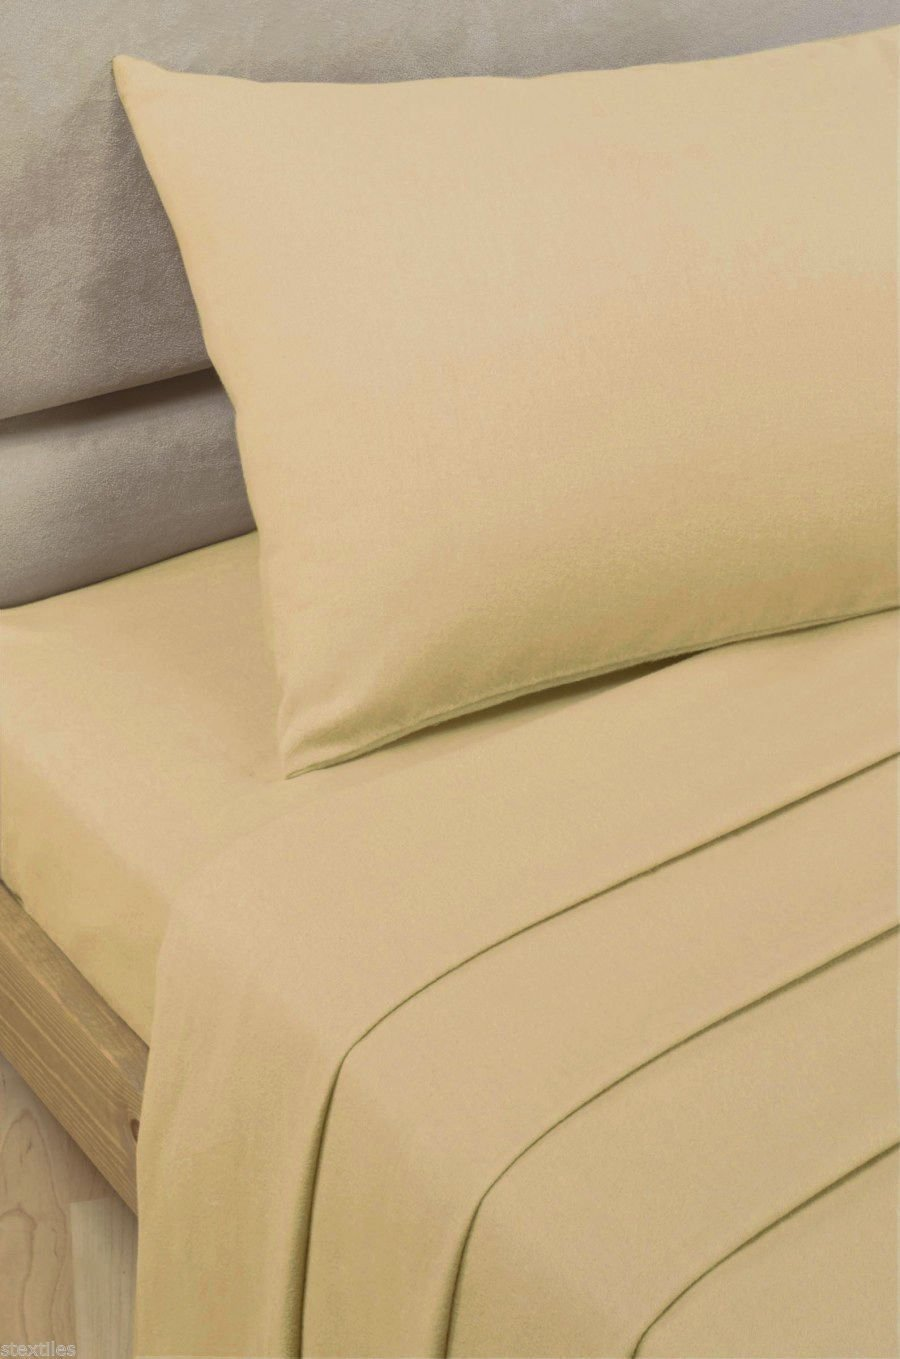 BuyJoy Best Luxury Percale 10